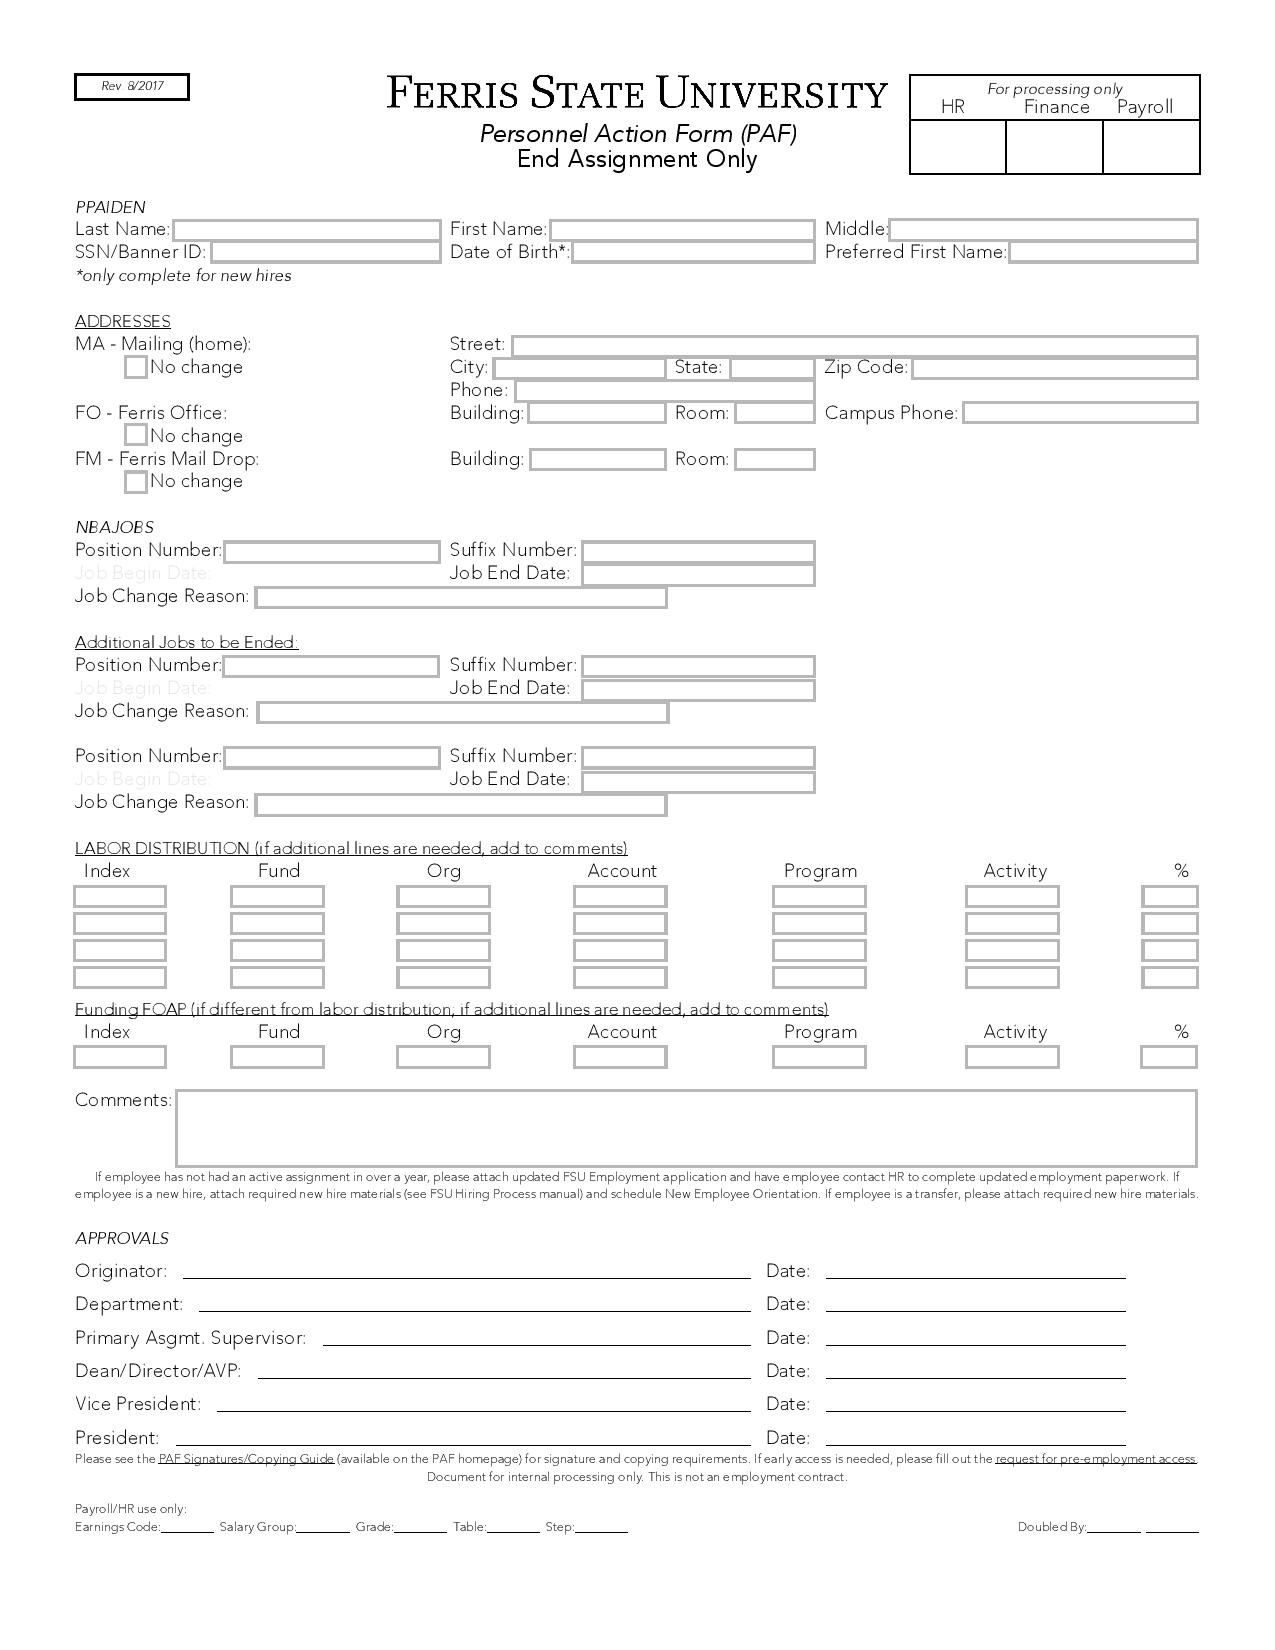 personnel action form end assignment page 001